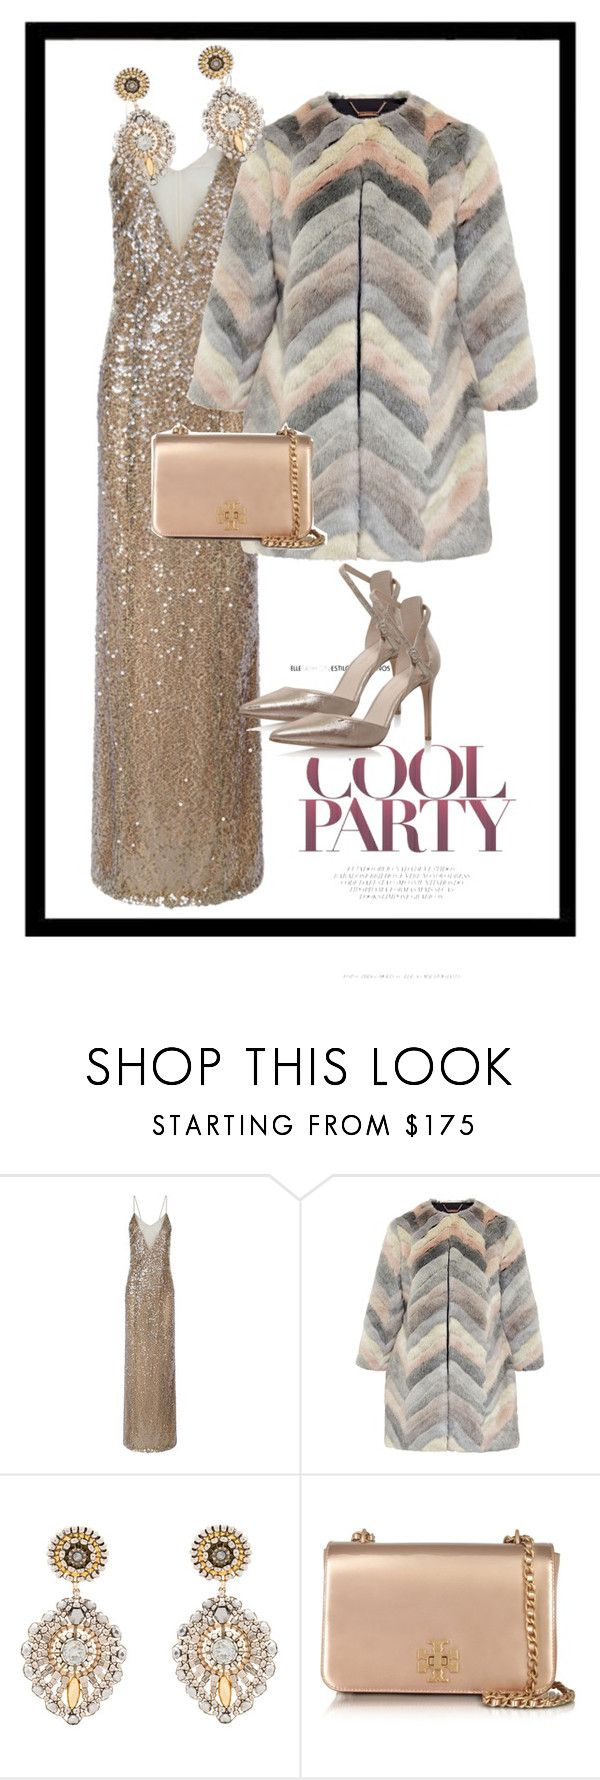 """""""New Year Pretty 2"""" by nata-zi ❤ liked on Polyvore featuring Galvan, Nine West, Ted Baker, Miguel Ases and Tory Burch"""